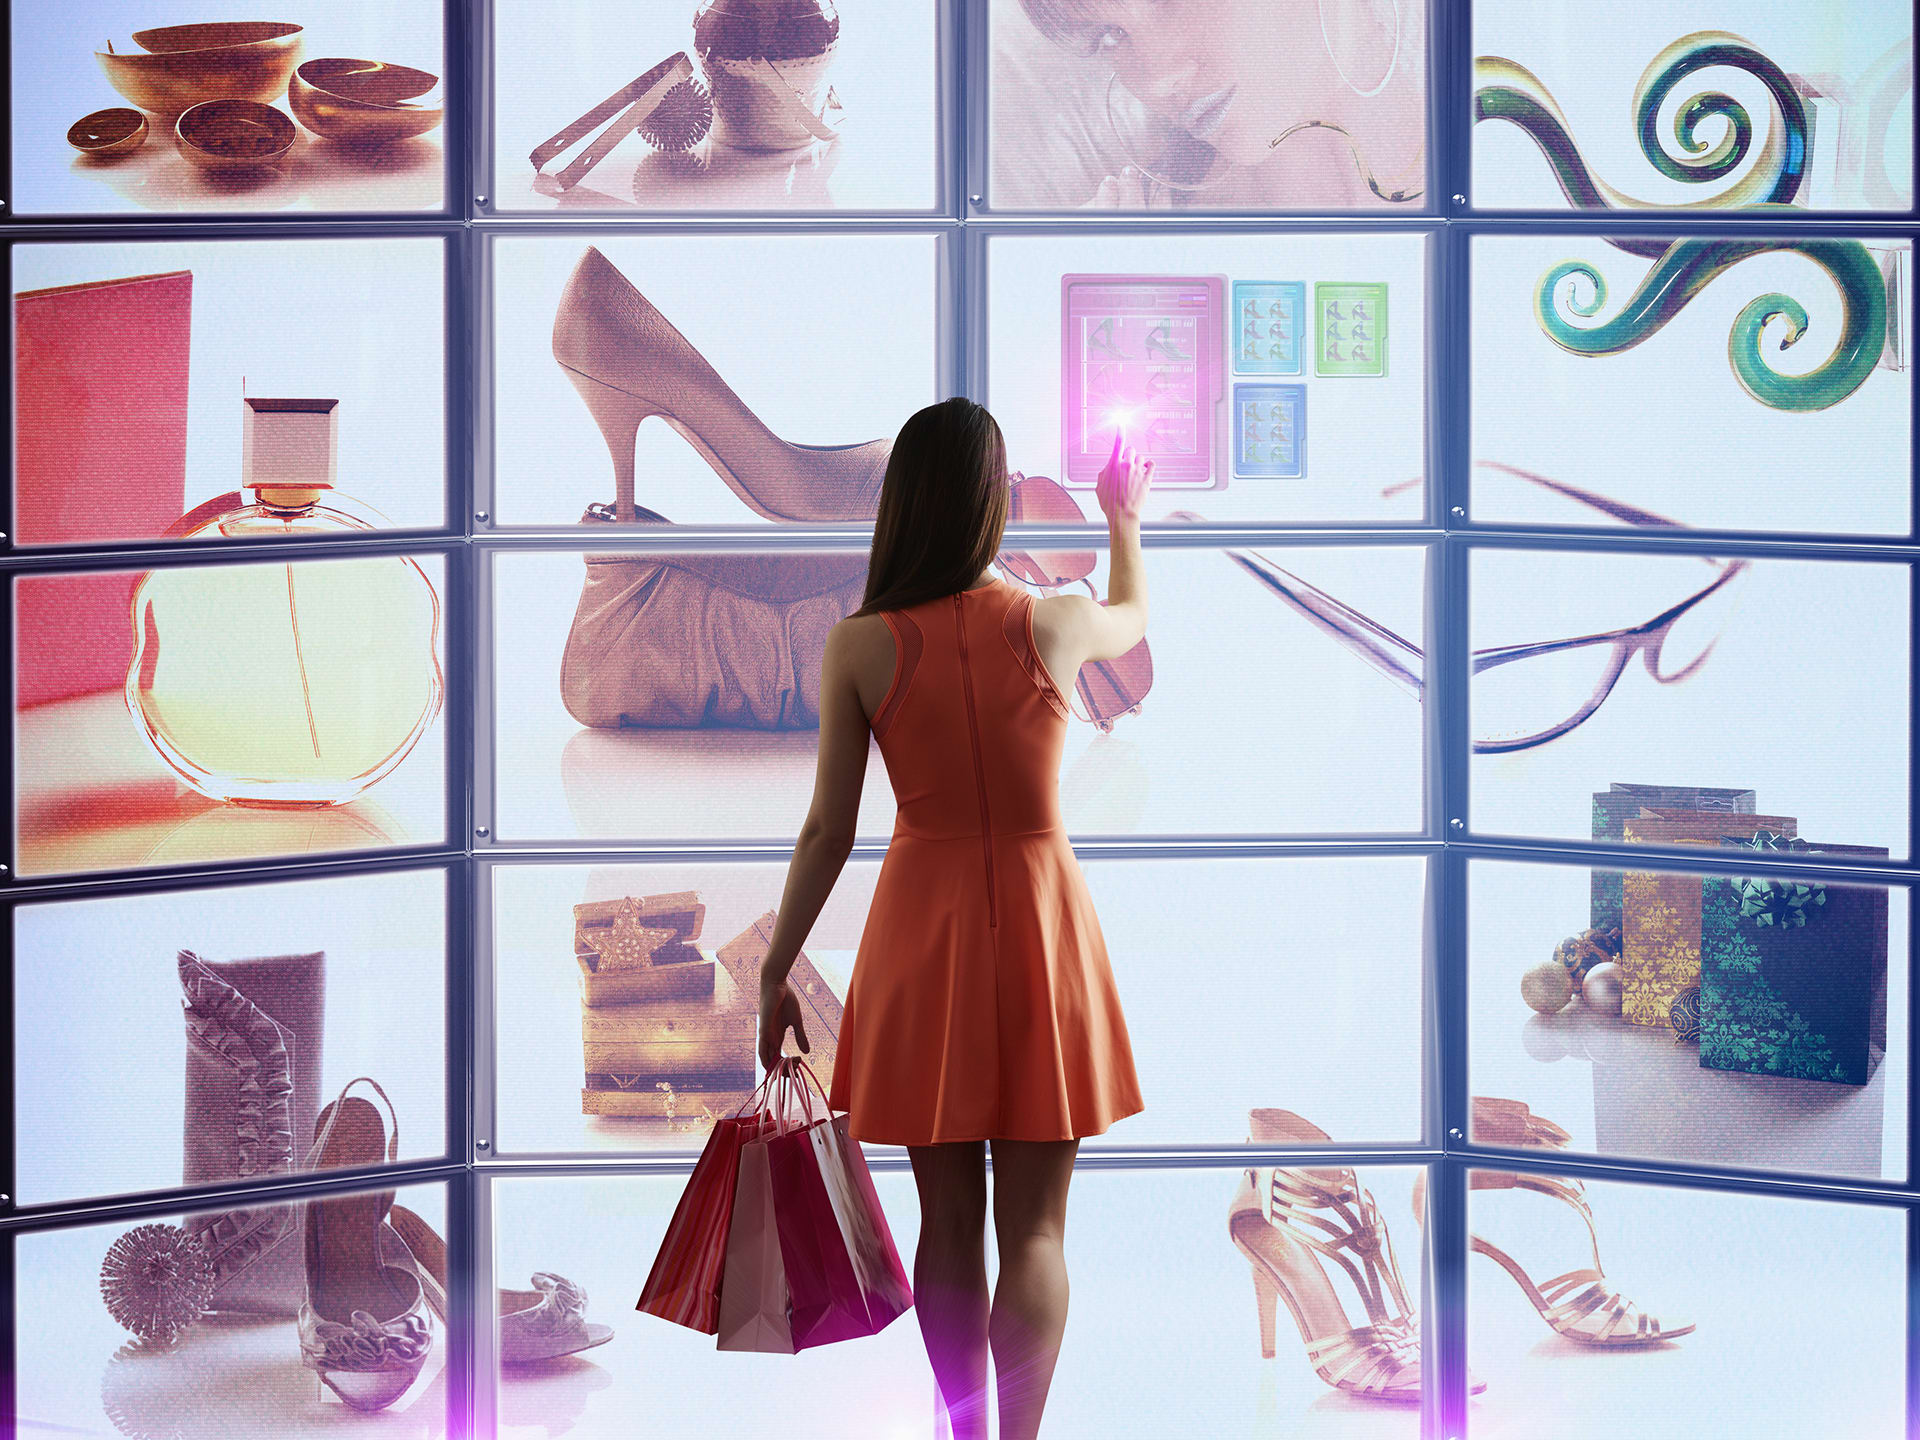 lady in red dress in front of online shopping screens